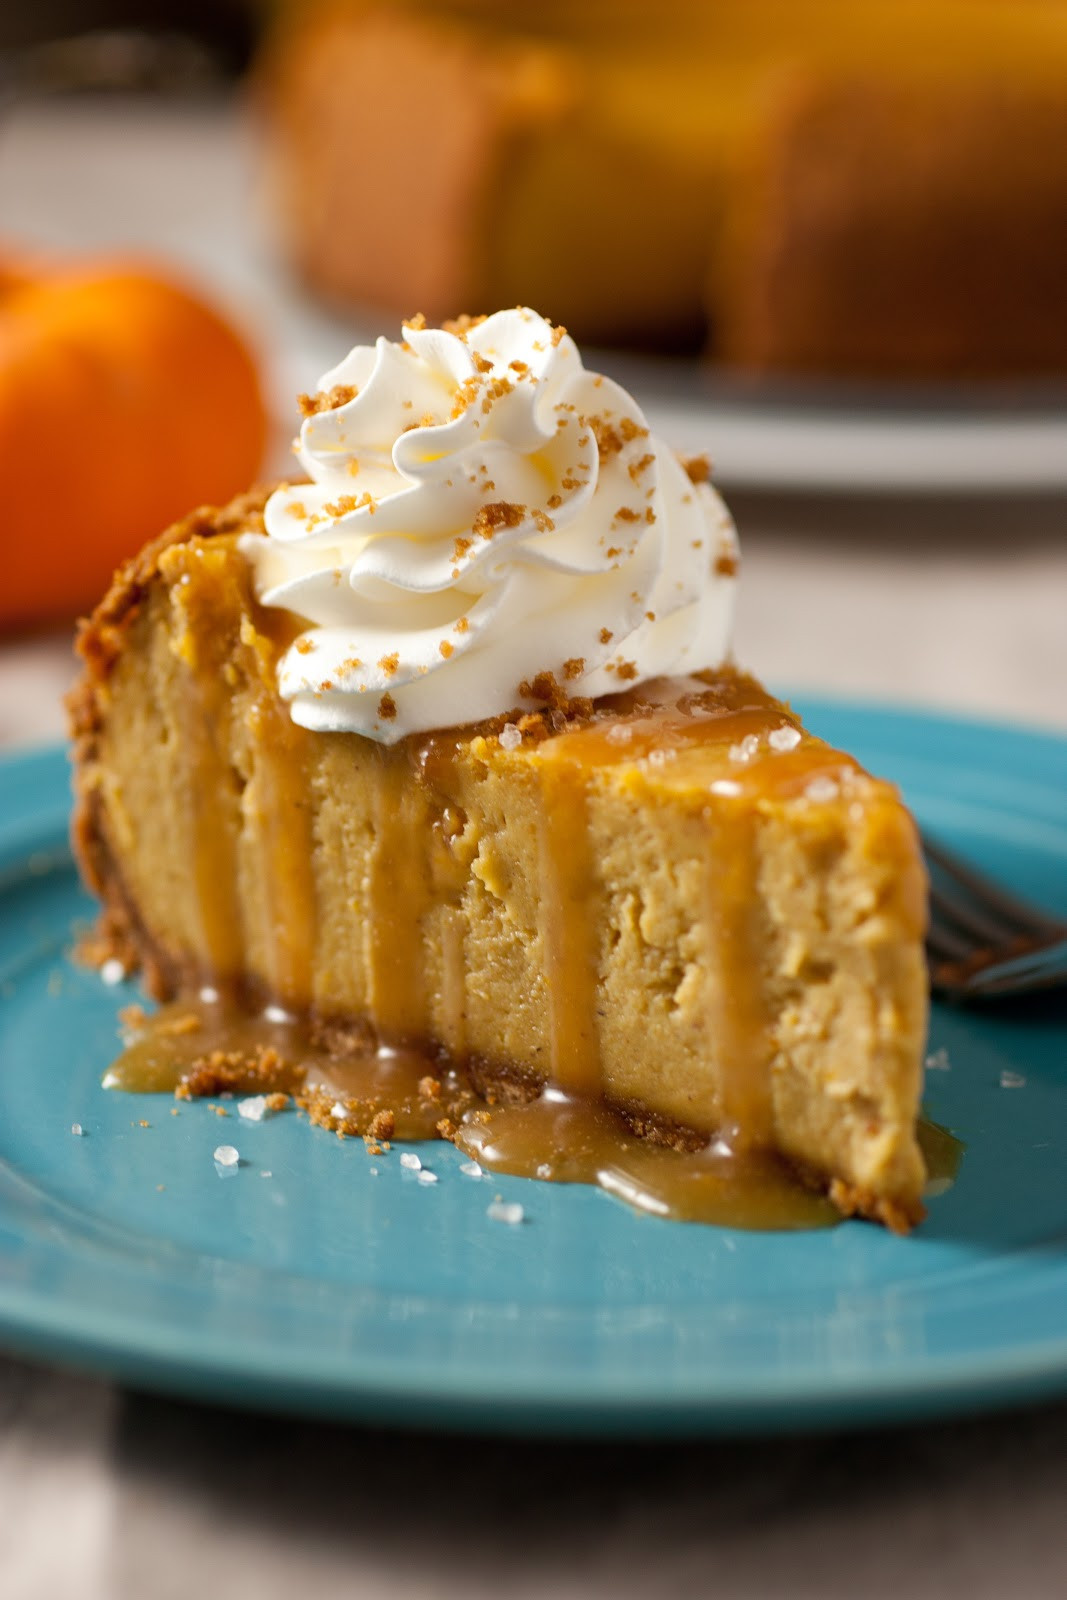 Pumpkin Cheesecake Recipe  October 21 is National Pumpkin Cheesecake Day